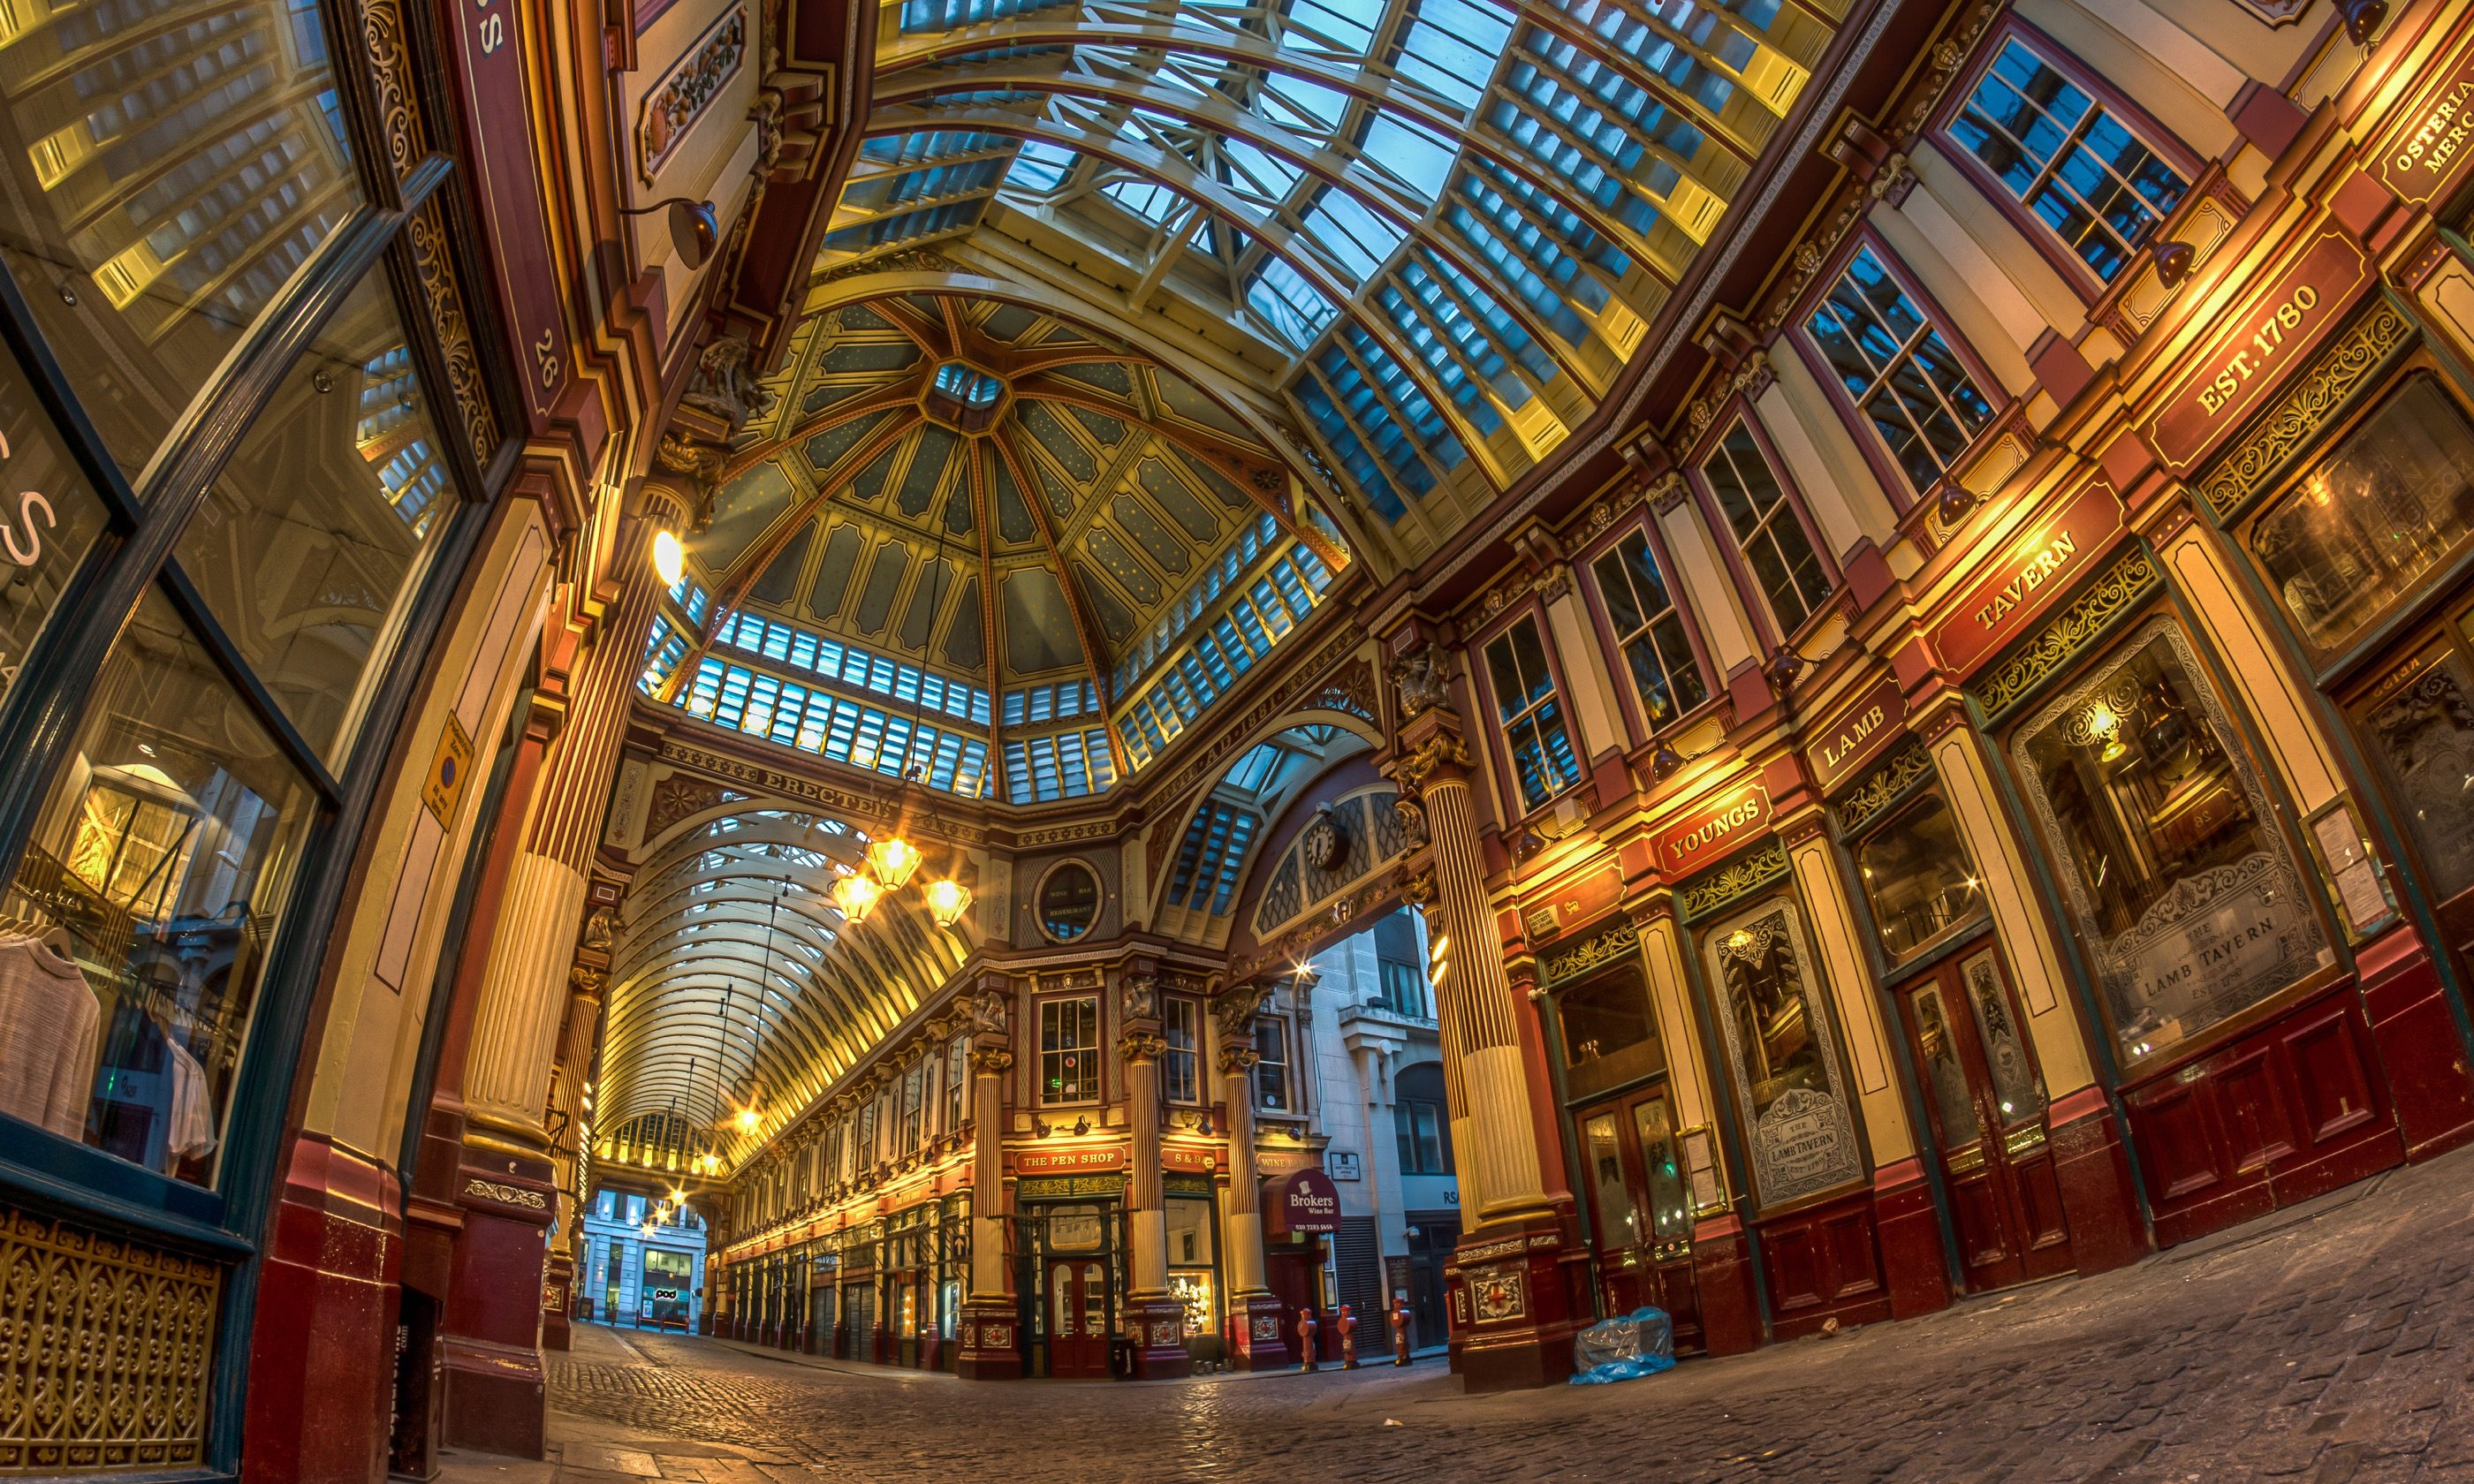 The gilded interior of Leadenhall Market (Dreamstime)